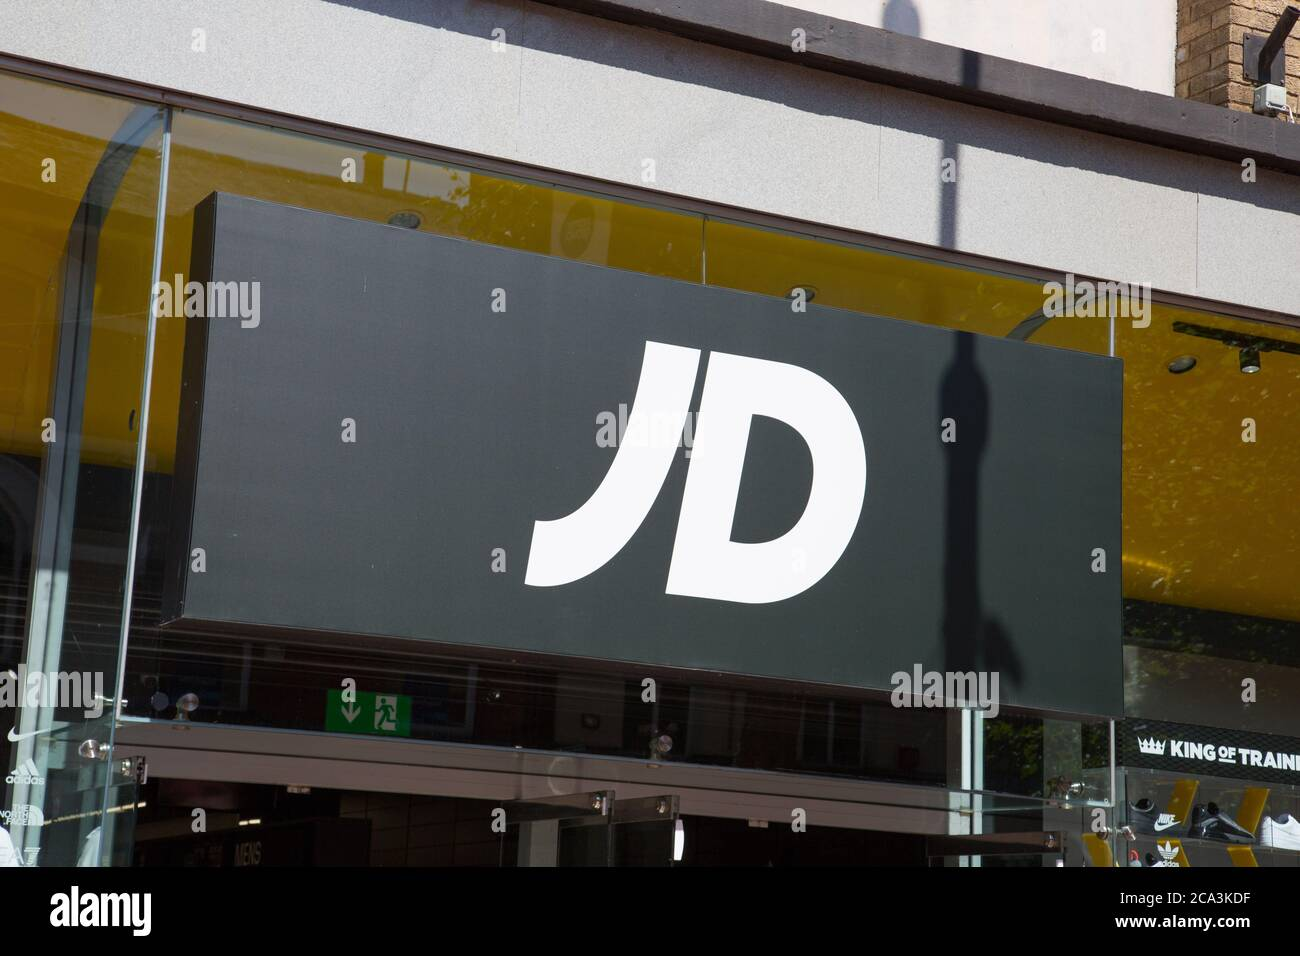 jd logo high resolution stock photography and images alamy alamy